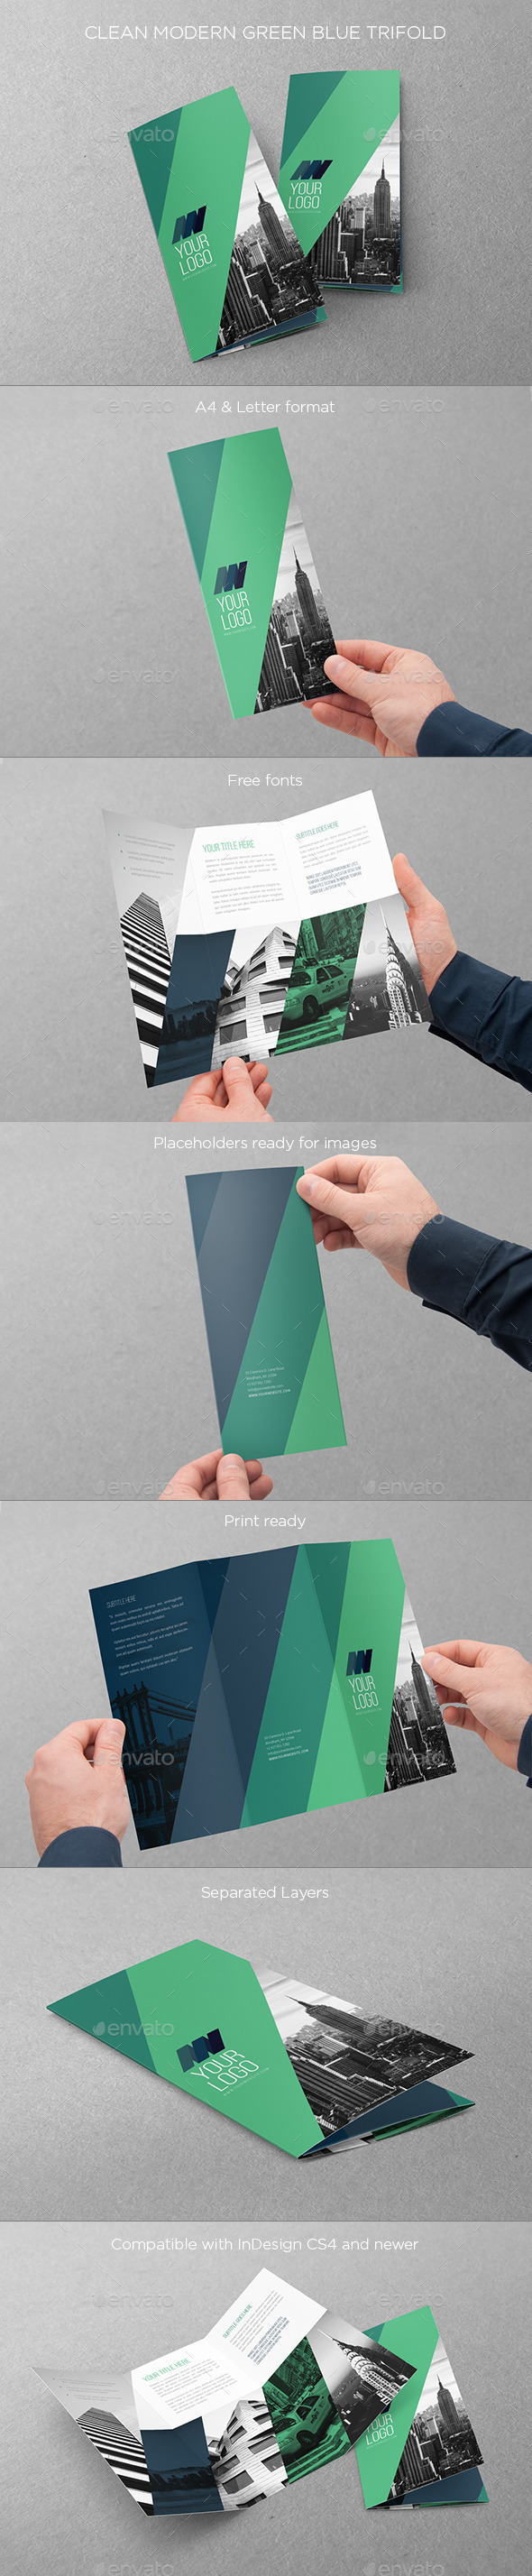 GraphicRiver Clean Modern Green Blue Trifold 11225278